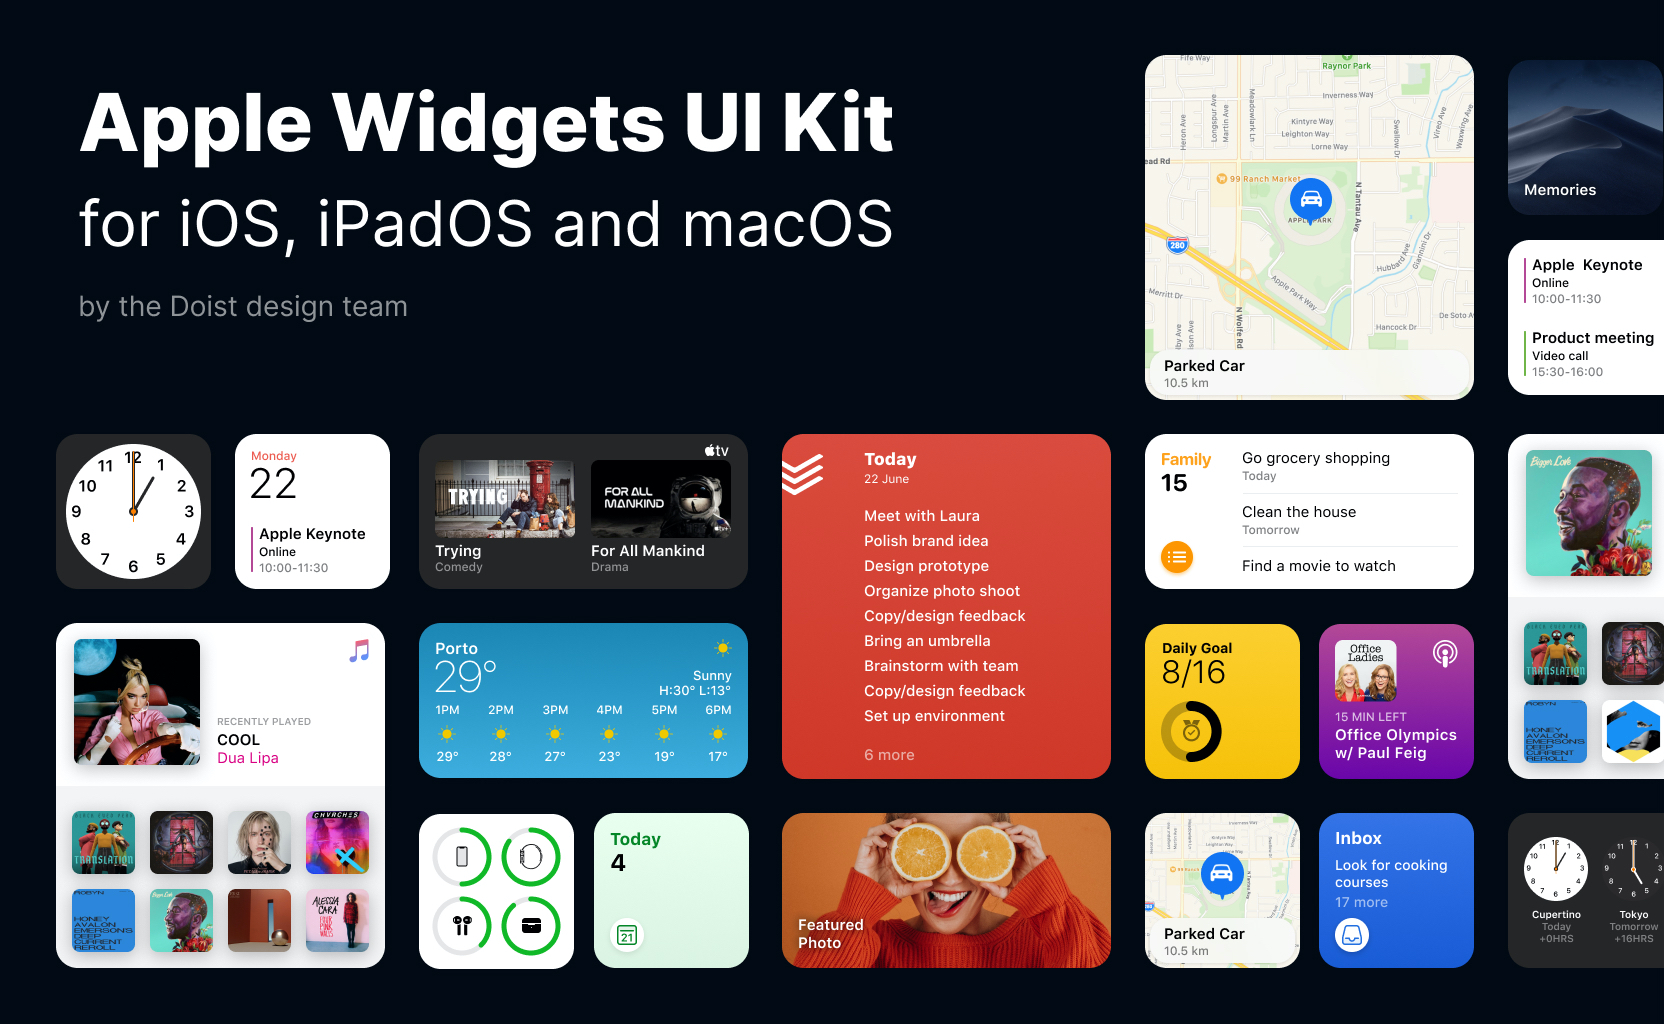 Apple Widgets UI Kit for Figma - Doist design team recreated the recently announced Apple Widgets from iOS 14 for you. The goal of this UI kit template file is to help you kick start your designs and prototypes. We hope it is helpful!